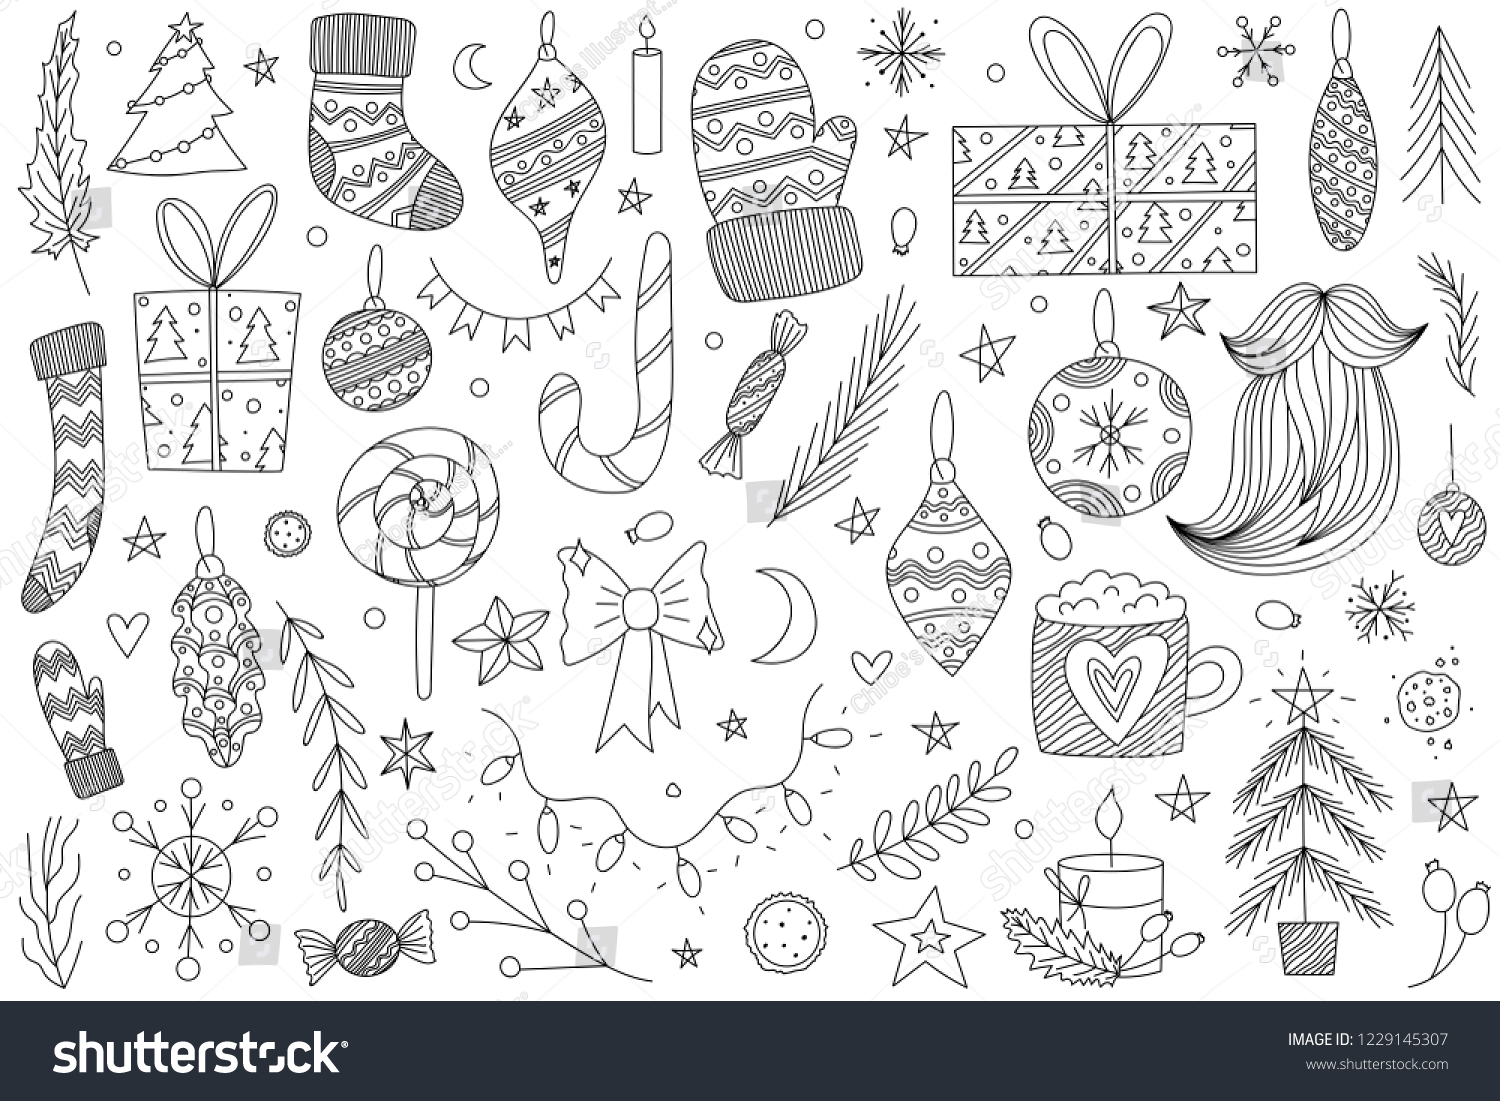 stock-vector-black-and-white-hand-drawn-